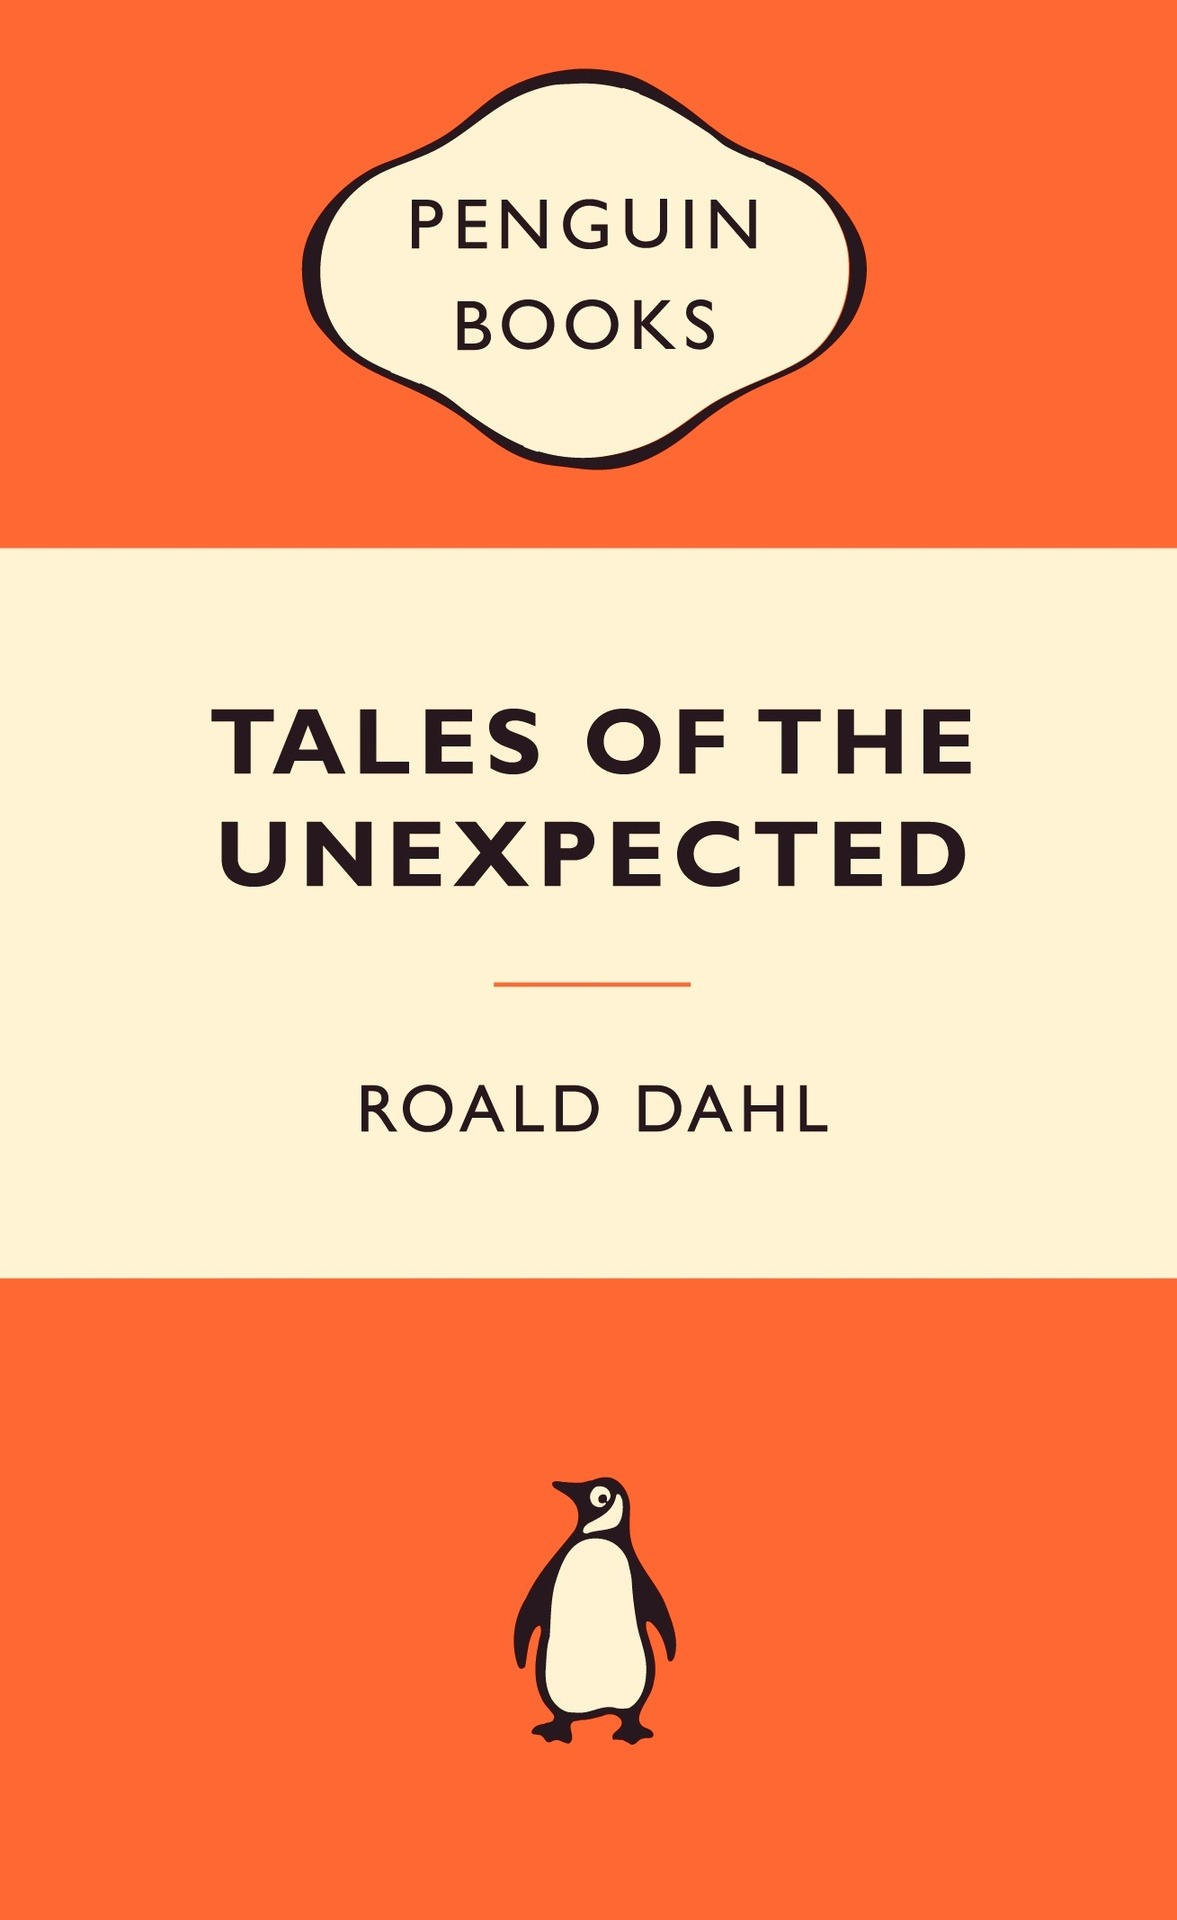 Tales of the Unexpected - Roald Dahl